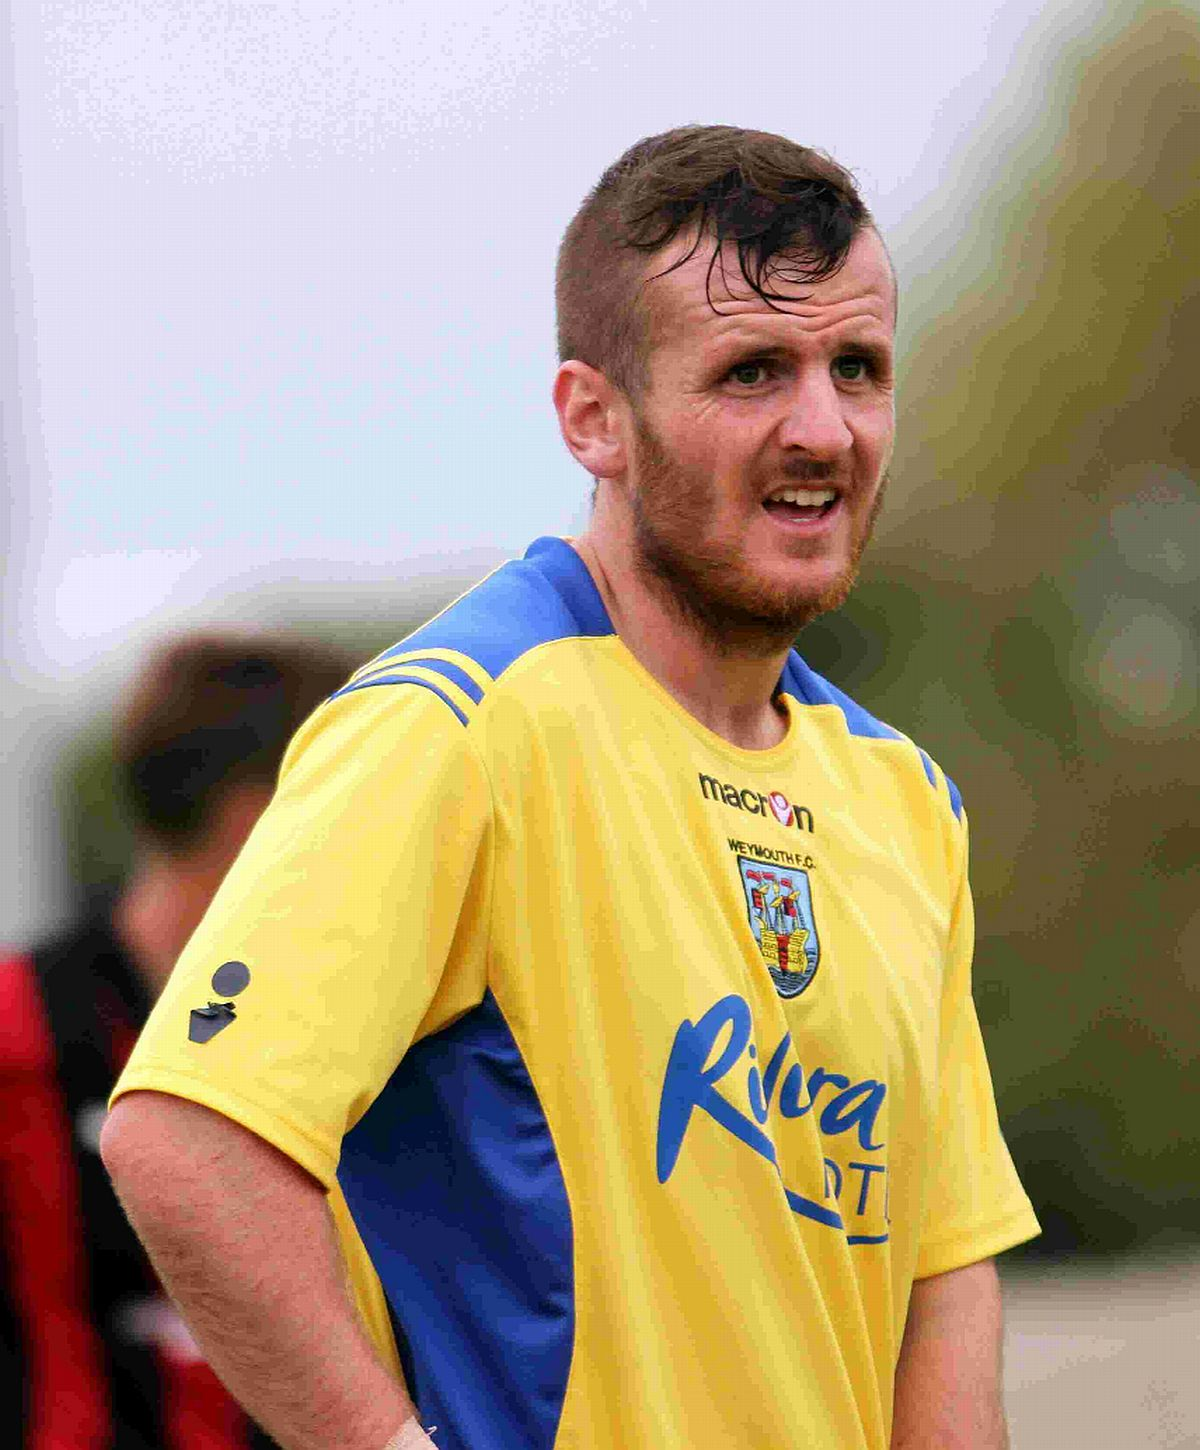 FIRED TERRAS AHEAD: Striker Stewart Yetton